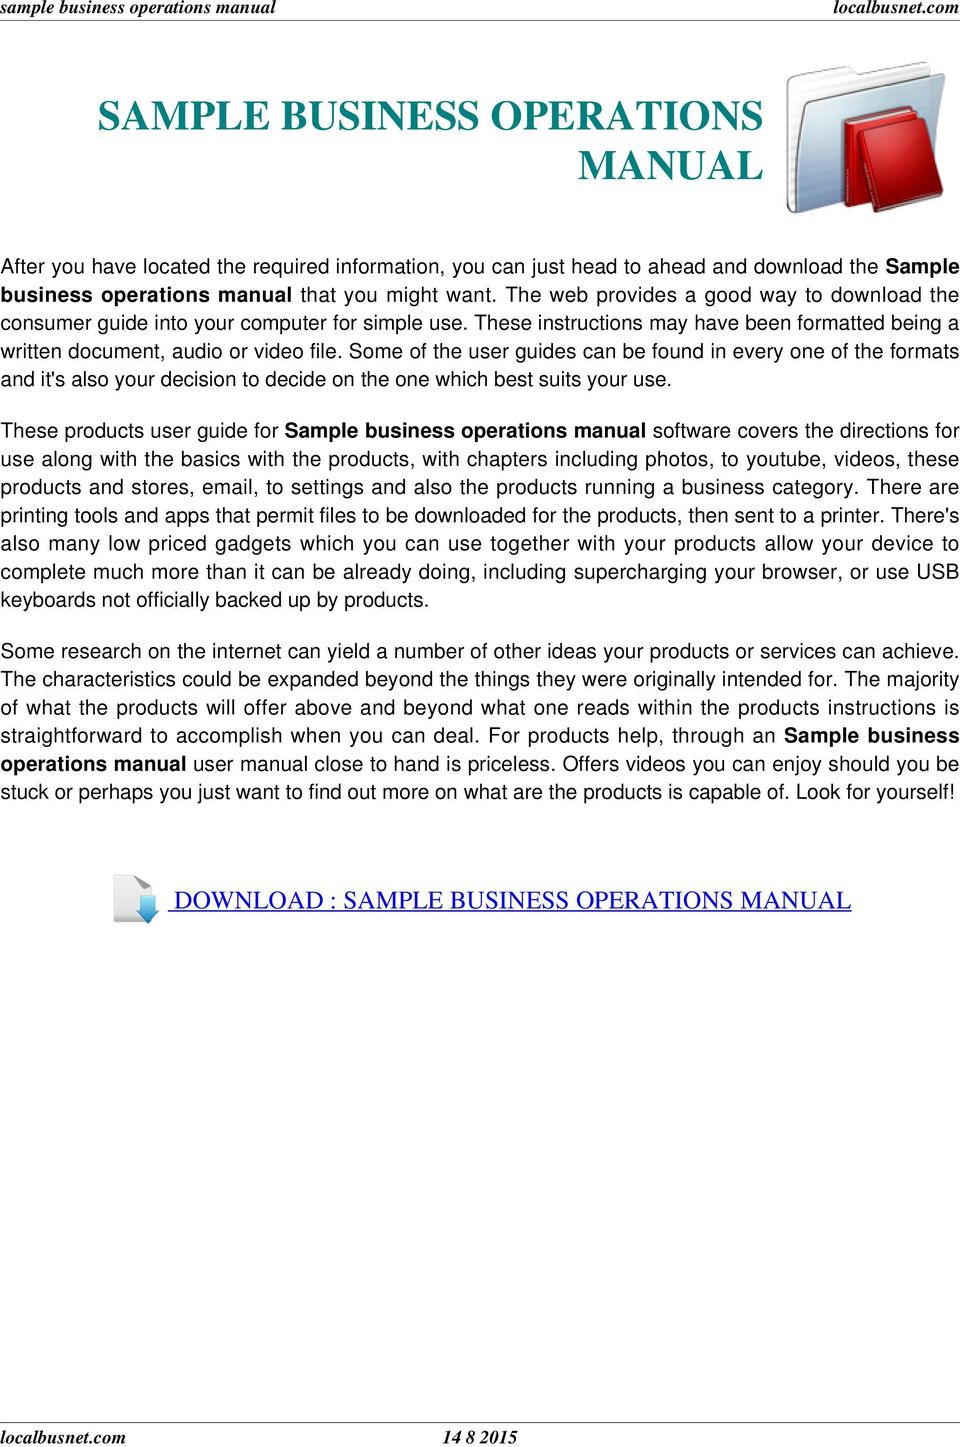 DOWNLOAD : SAMPLE BUSINESS OPERATIONS MANUAL. Some of the user guides can  be found in every one of the formats and it's